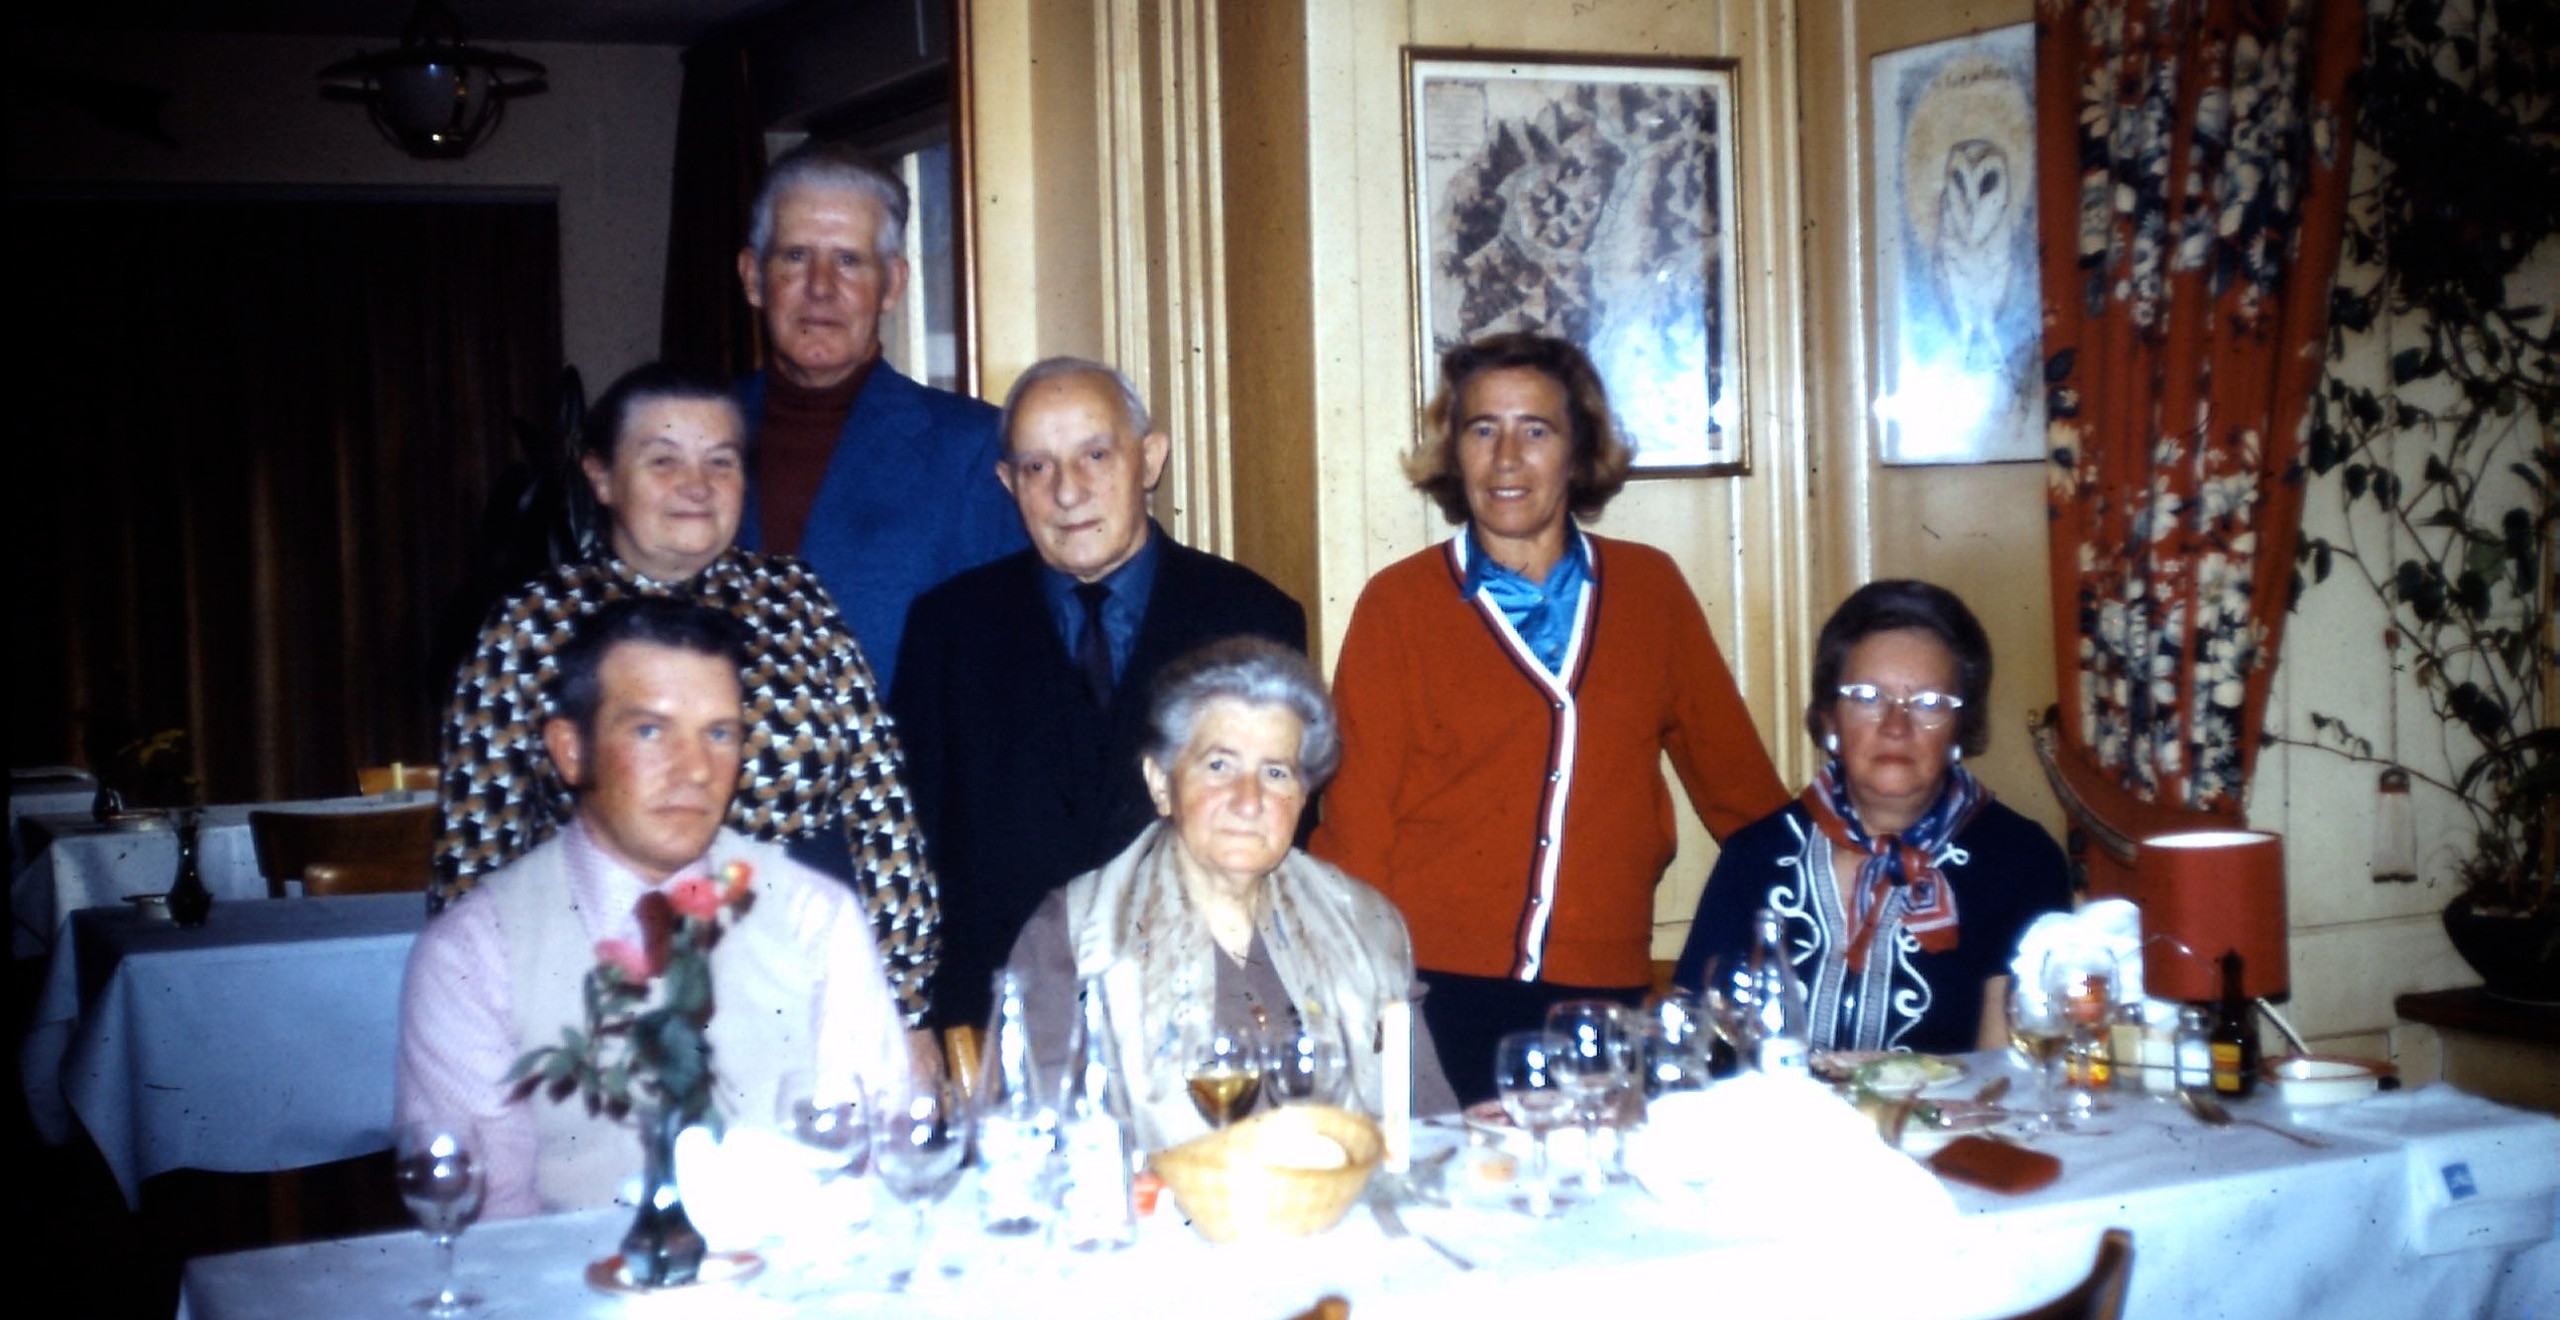 My parents took my grandparents to Switzerland to visit the home country. They returned with stories that captivated my imagination. I began dreaming of living somewhere overseas someday.